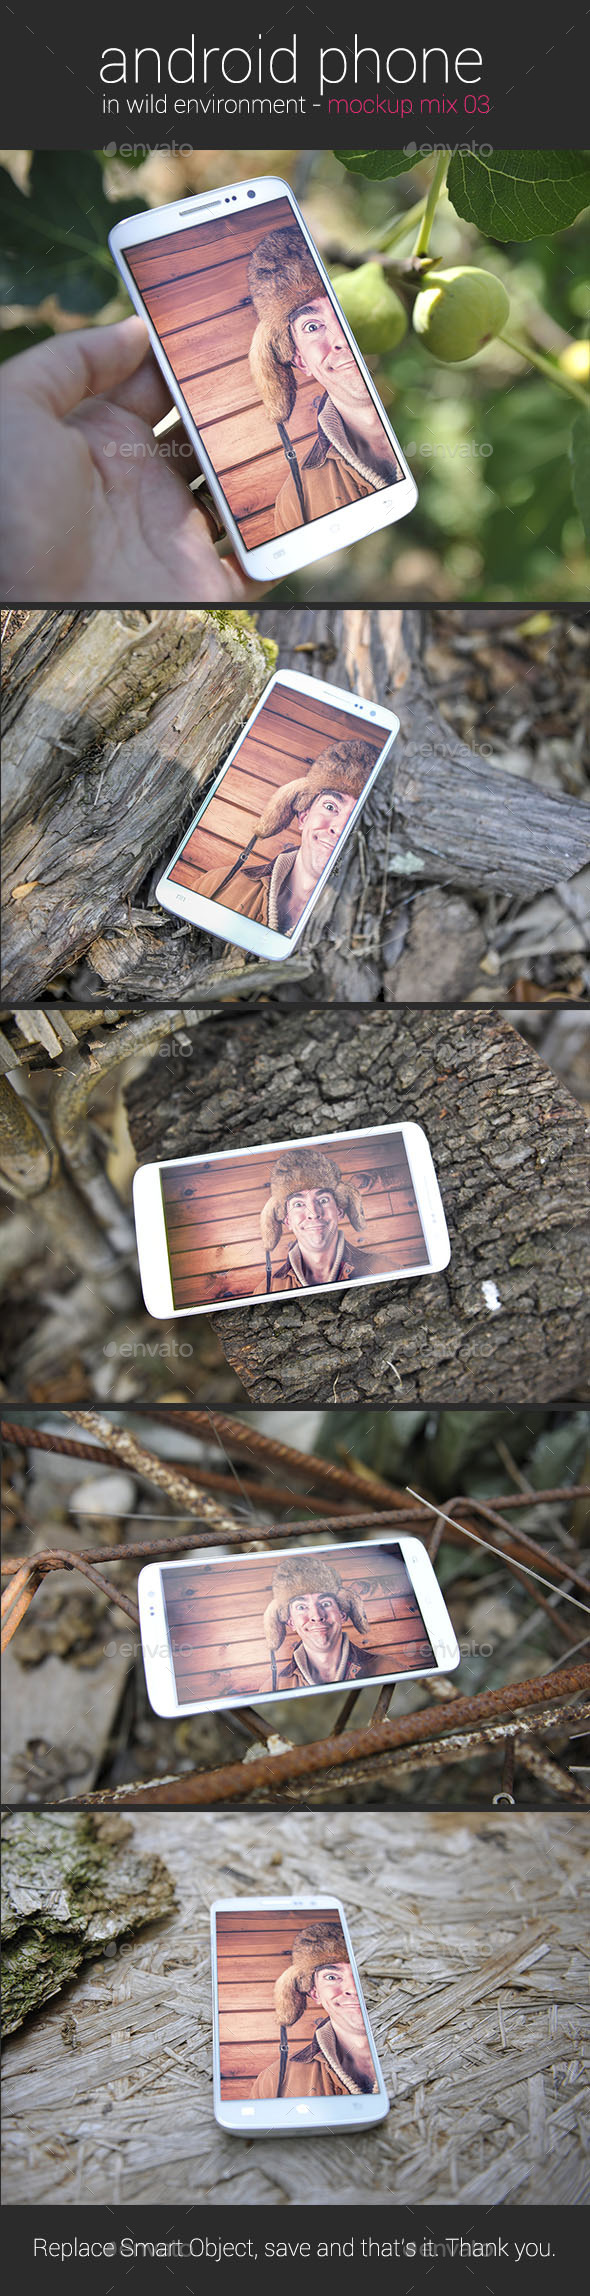 Android Phone in Wild Environment ver. 03 - Mockup - Mobile Displays